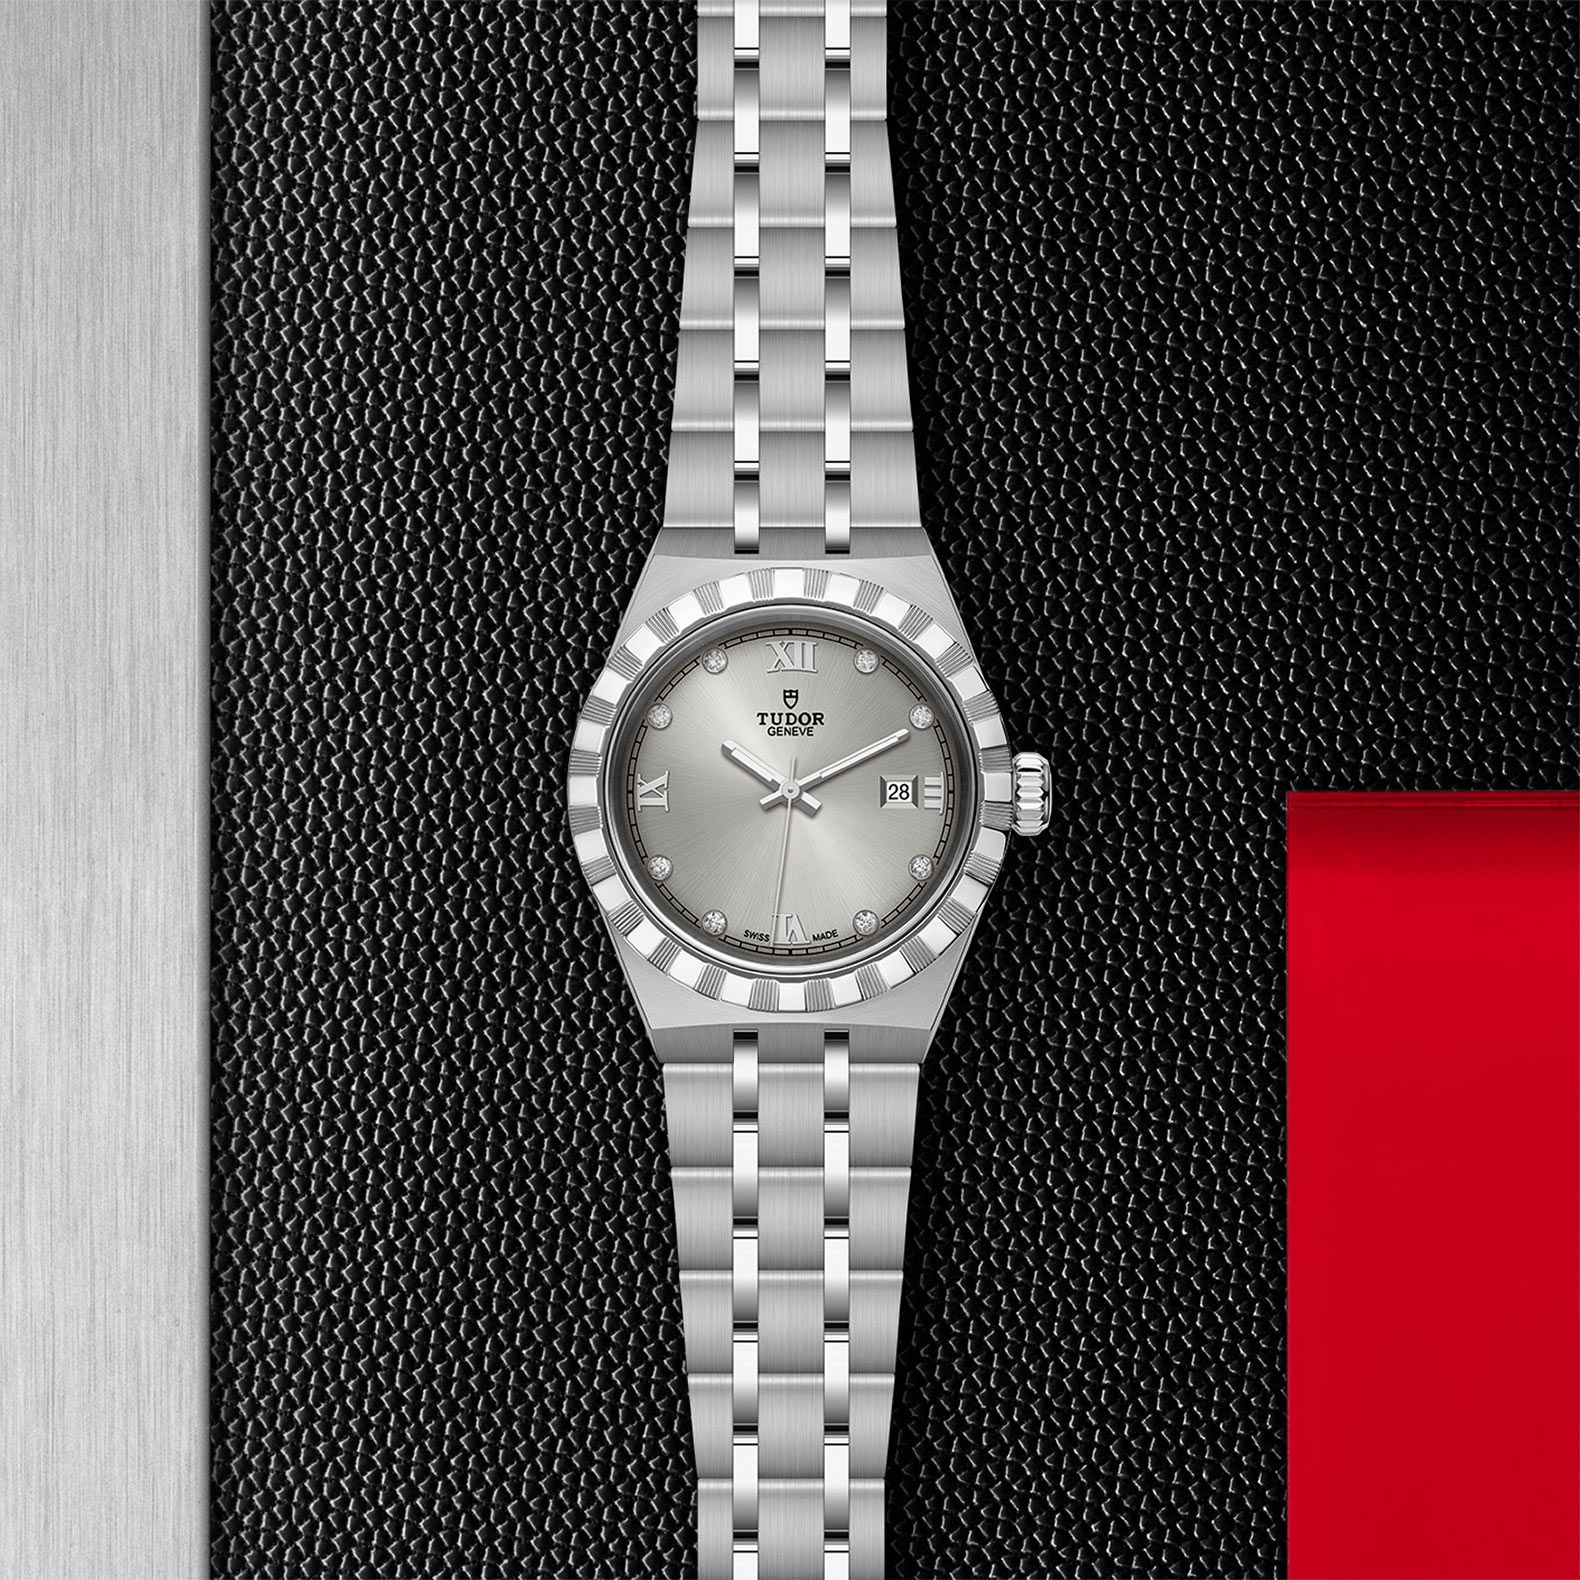 TUDOR ROYAL 28300 - 0002